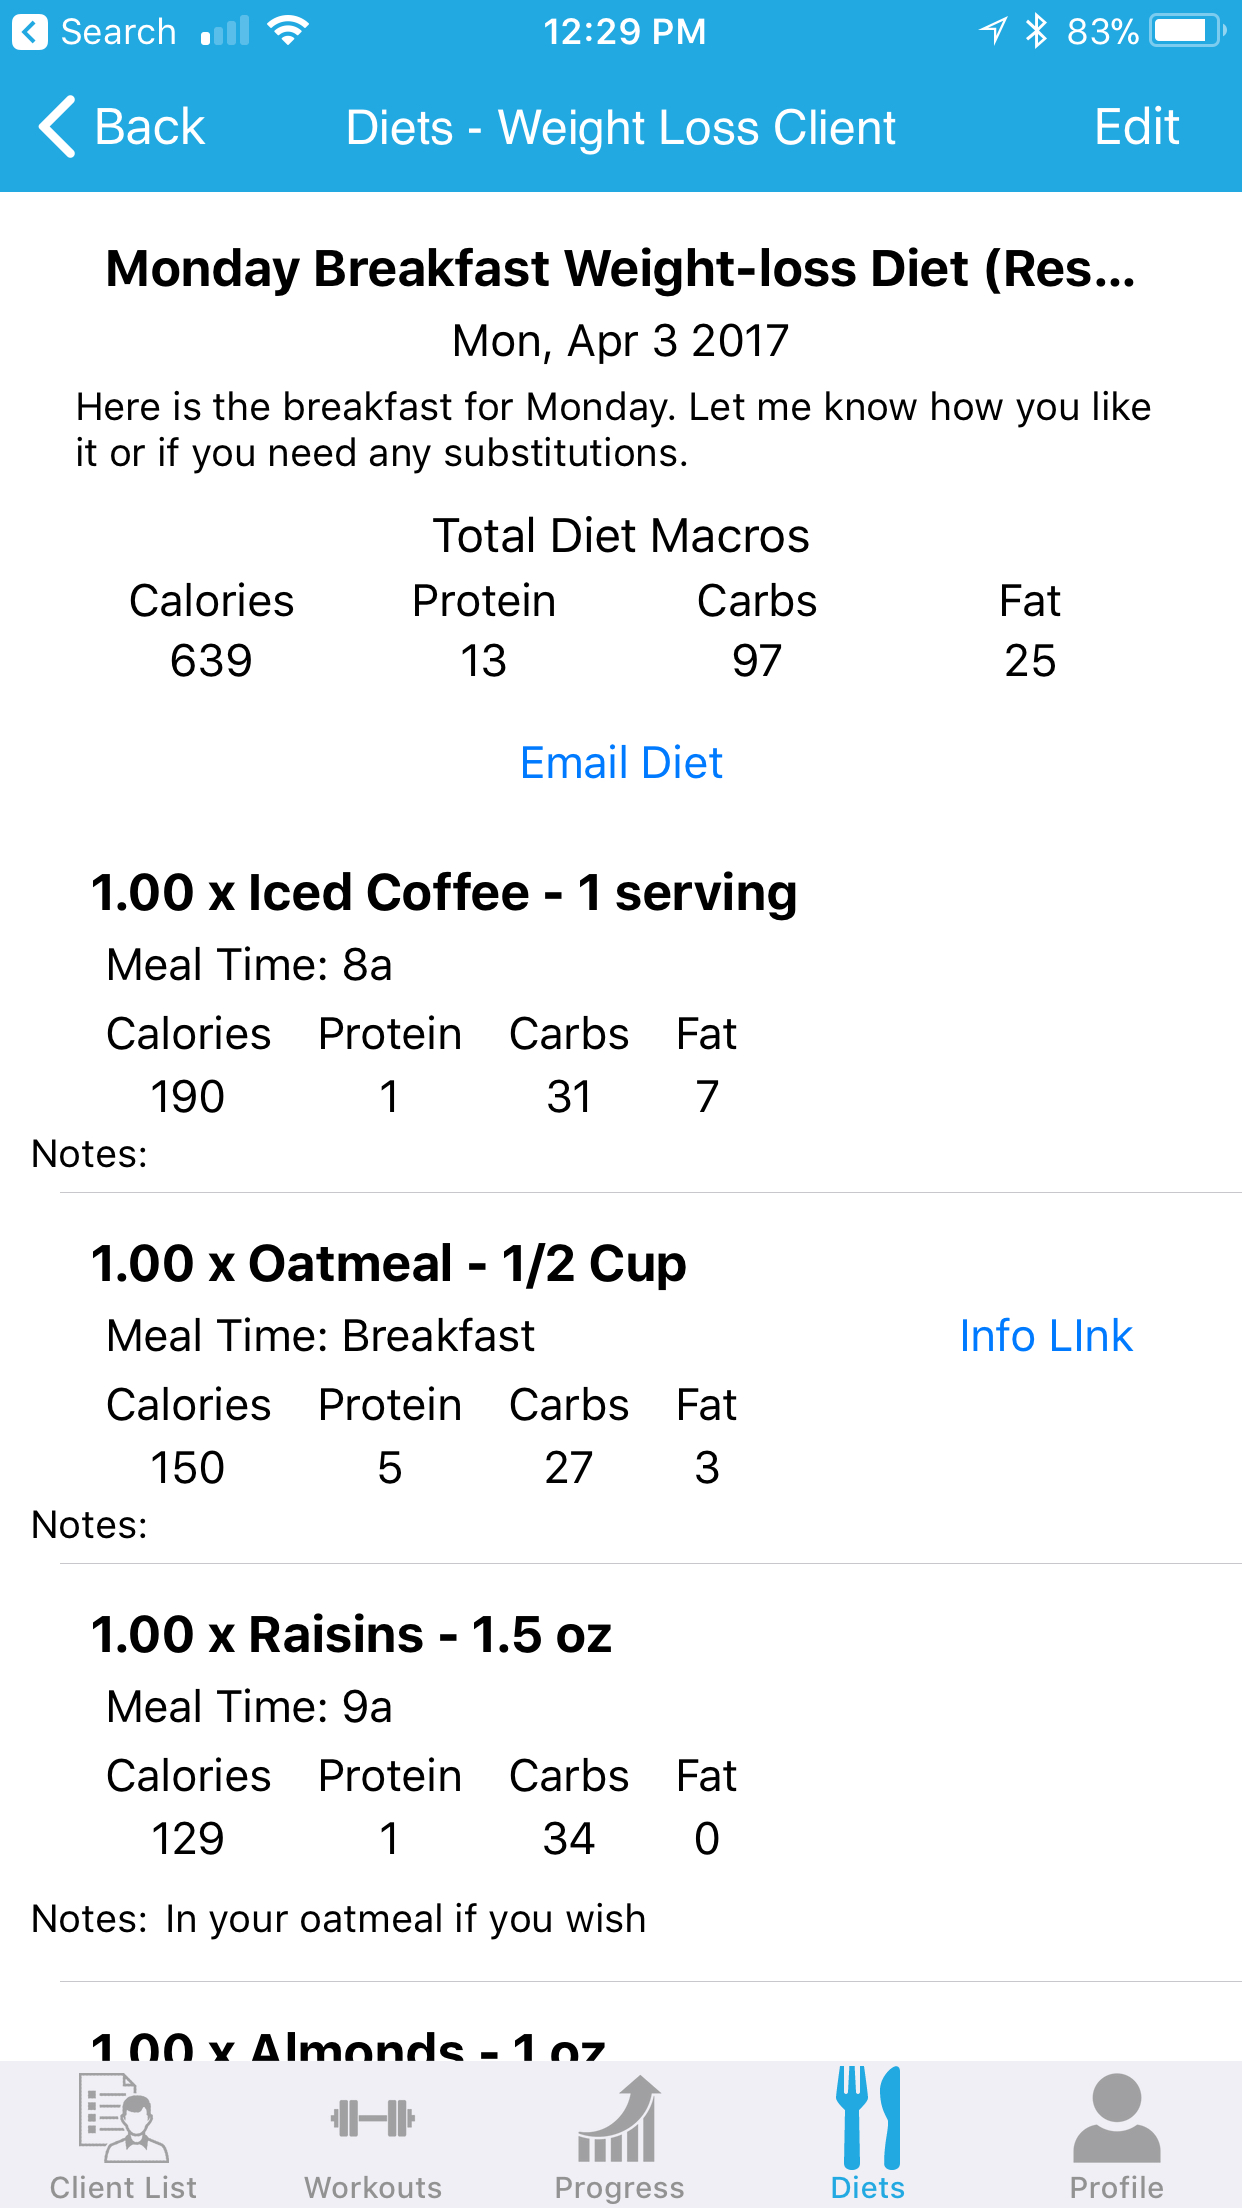 At the top of each of your personal training client's diets, you can see the Total Diet Macros Display which is automatically calculated for you.